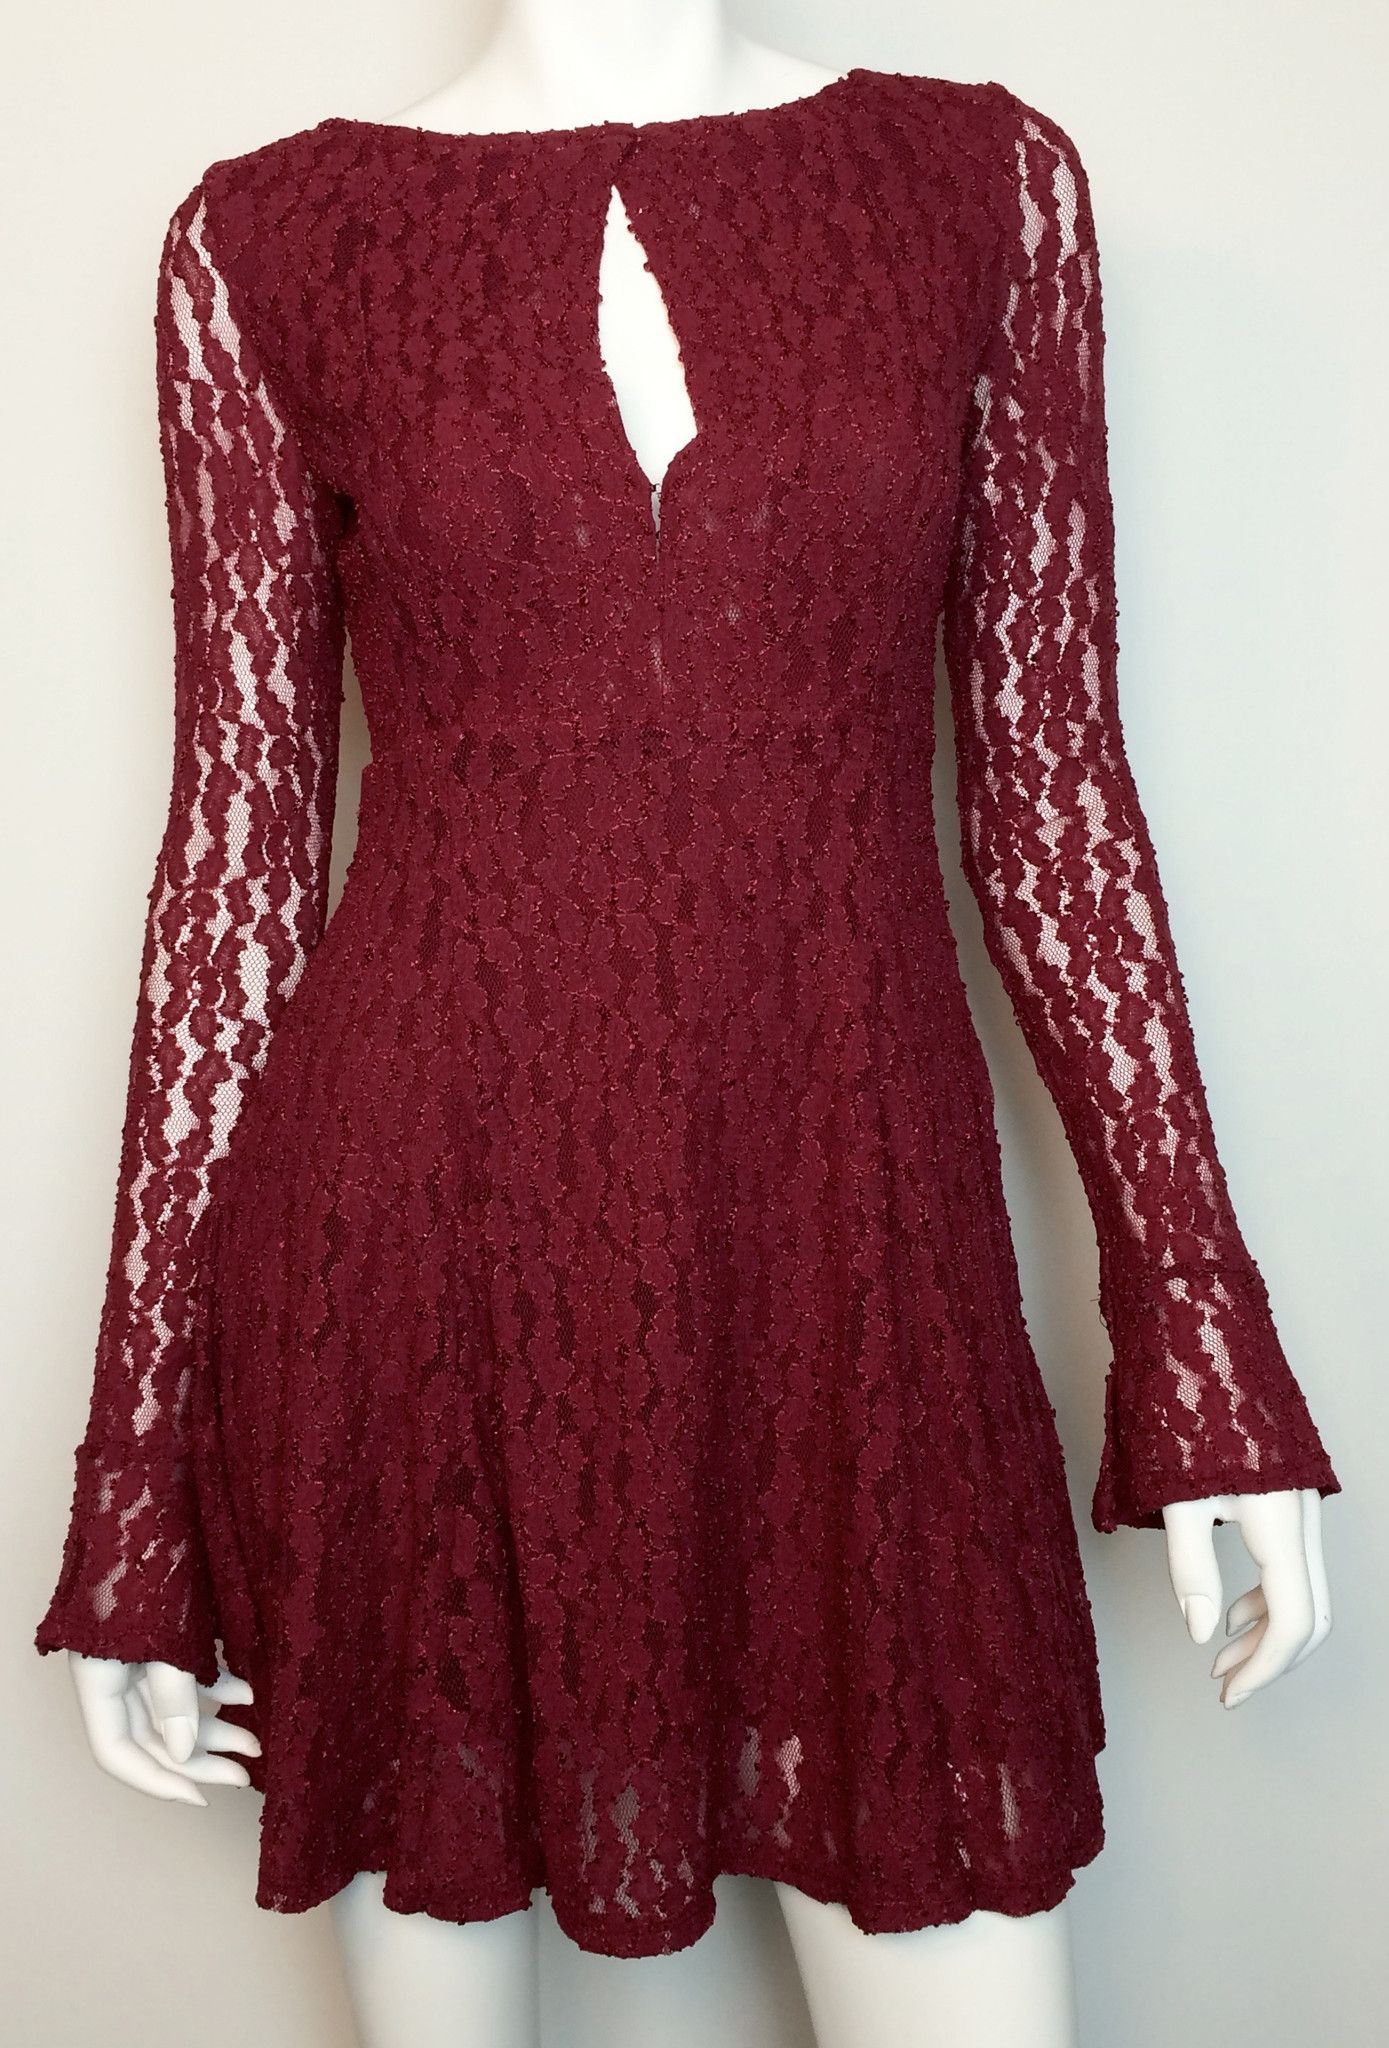 9bec8e1ba26 Free People Teen Witch Plumeria Stretch Lace Fit Flare Keyhole Dress M.  Find this Pin and more on Southern Sunday ...